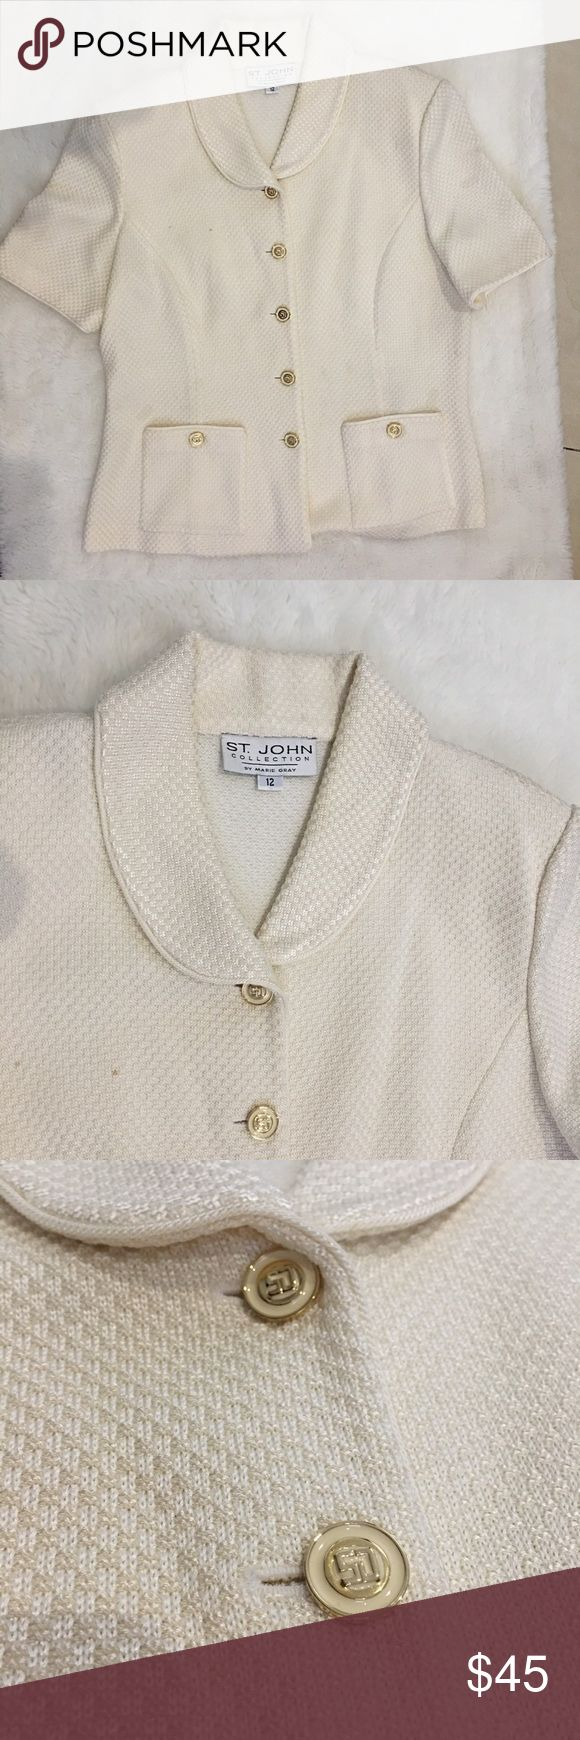 St. John Cream Beige Short Sleeve Blazer Top sz 12 Preowned authentic St. John Cream Beige Short Sleeve Blazer Top sz 12. Has faint stains. Beautiful buttons and fabric. Please look at pictures for better reference. Happy shopping!! St. John Jackets & Coats Blazers